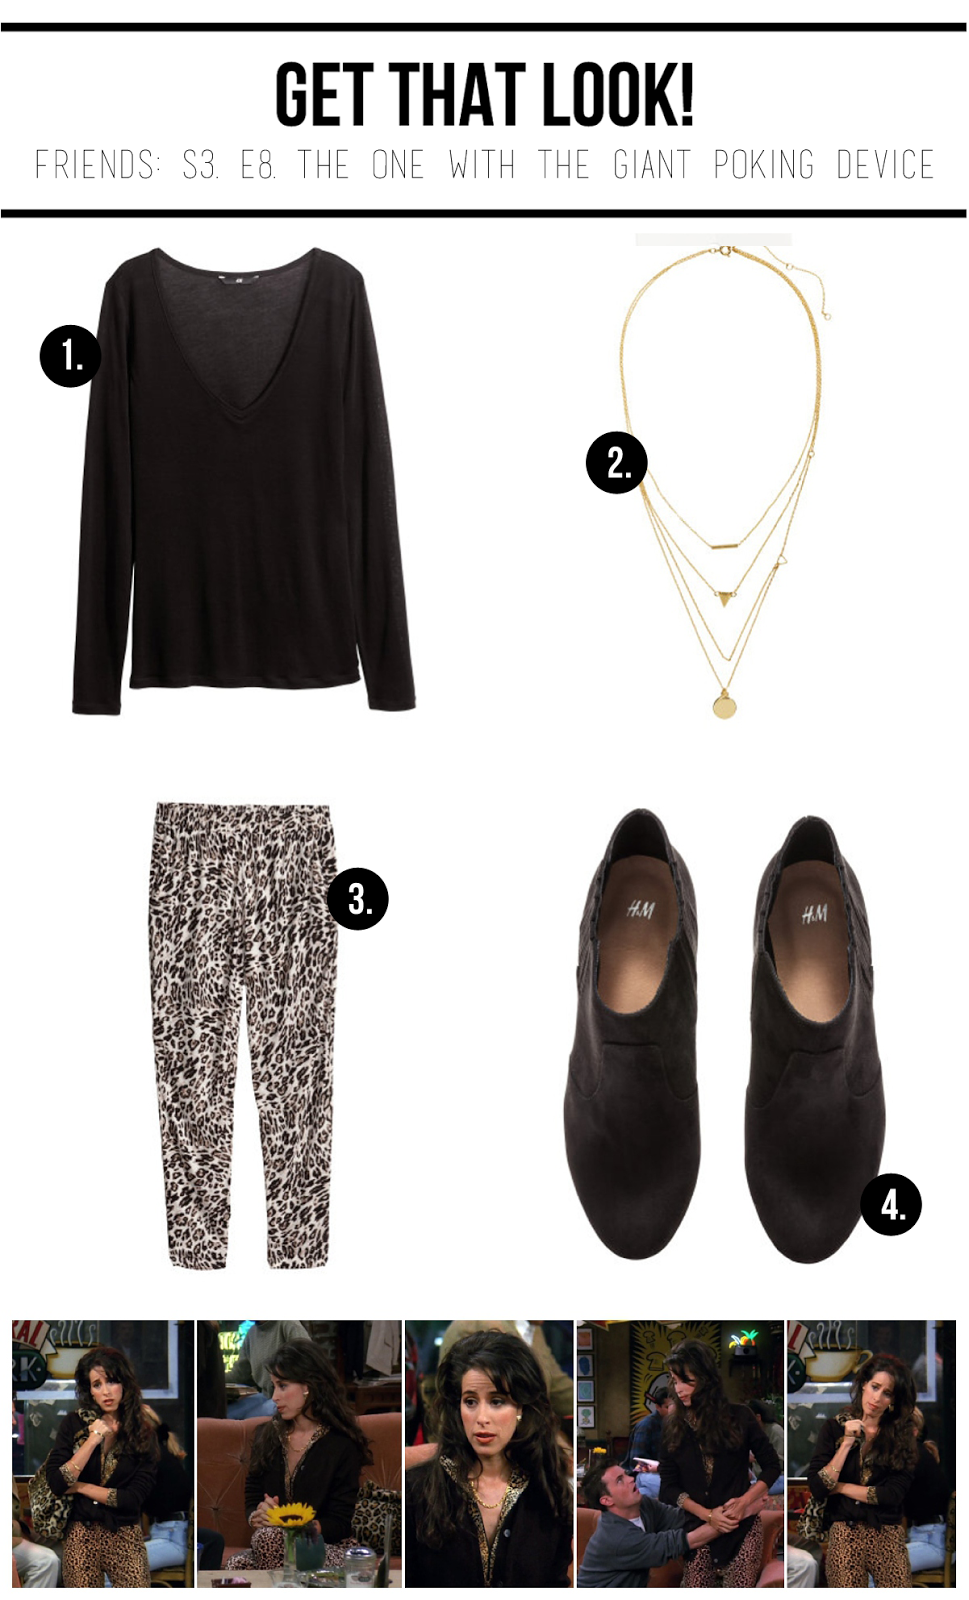 friends-clothes-style-janice-leopard-print.png